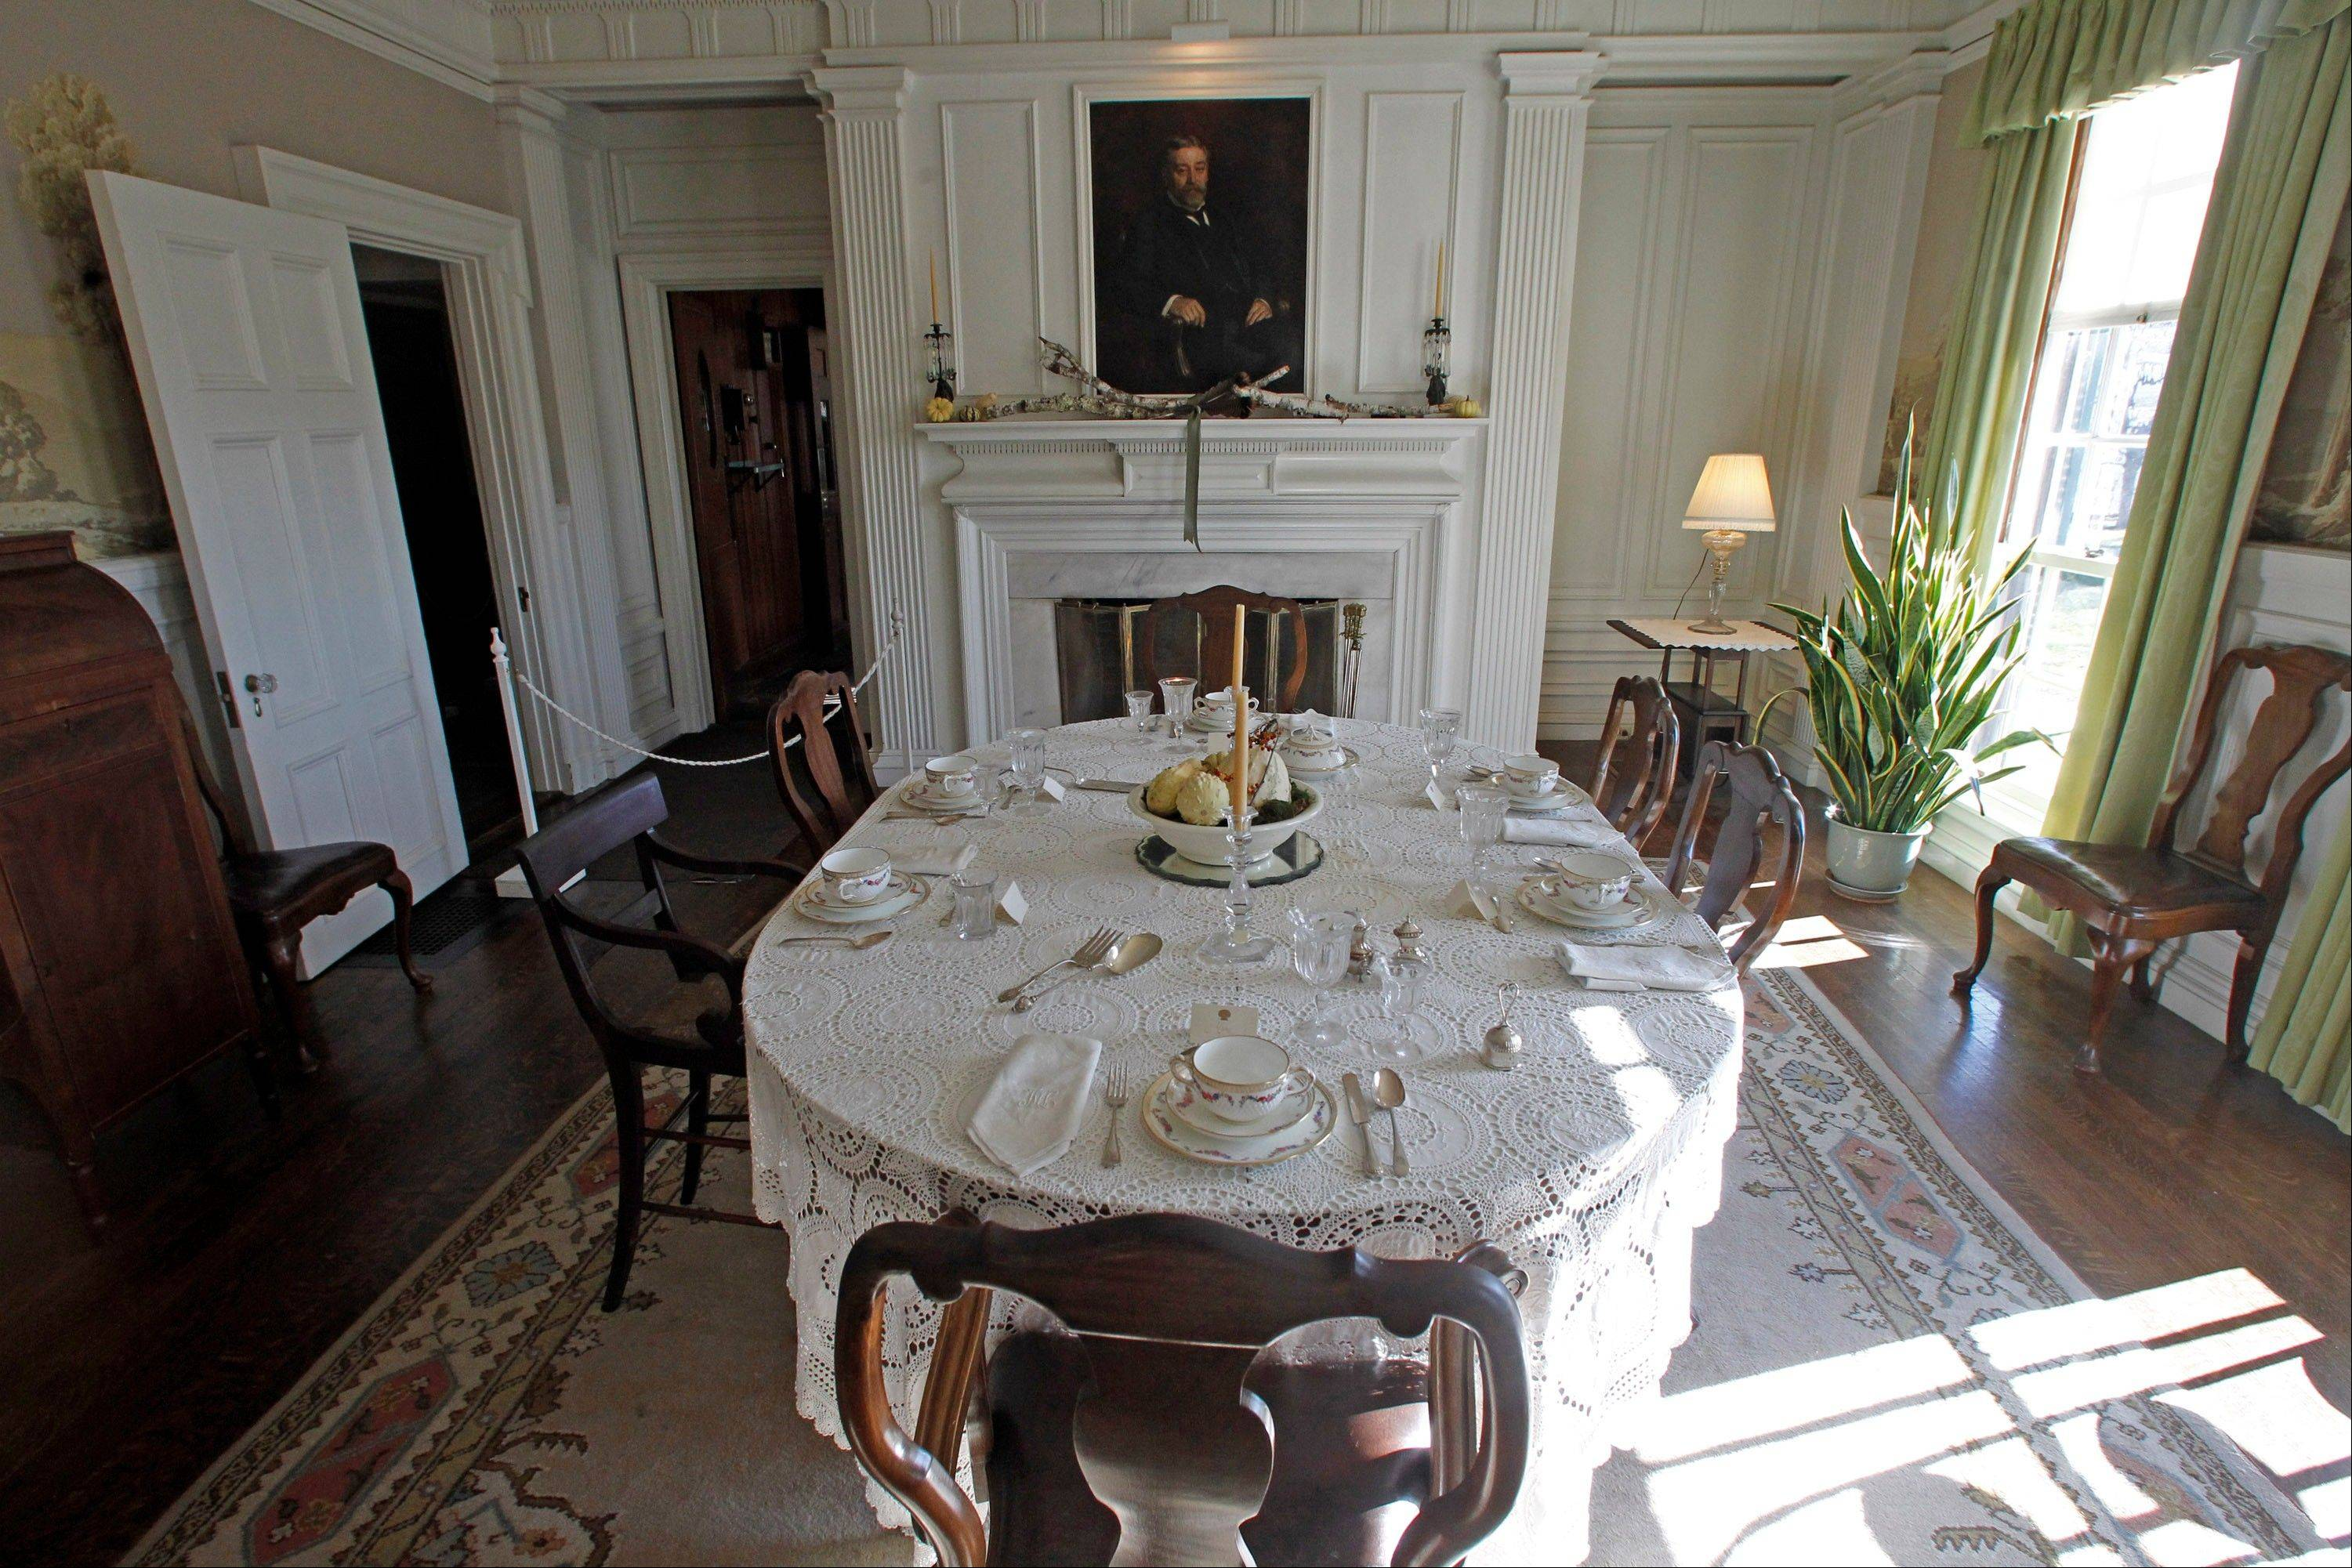 The dining room was a gathering space at the Robert Todd Lincoln mansion Hildene.